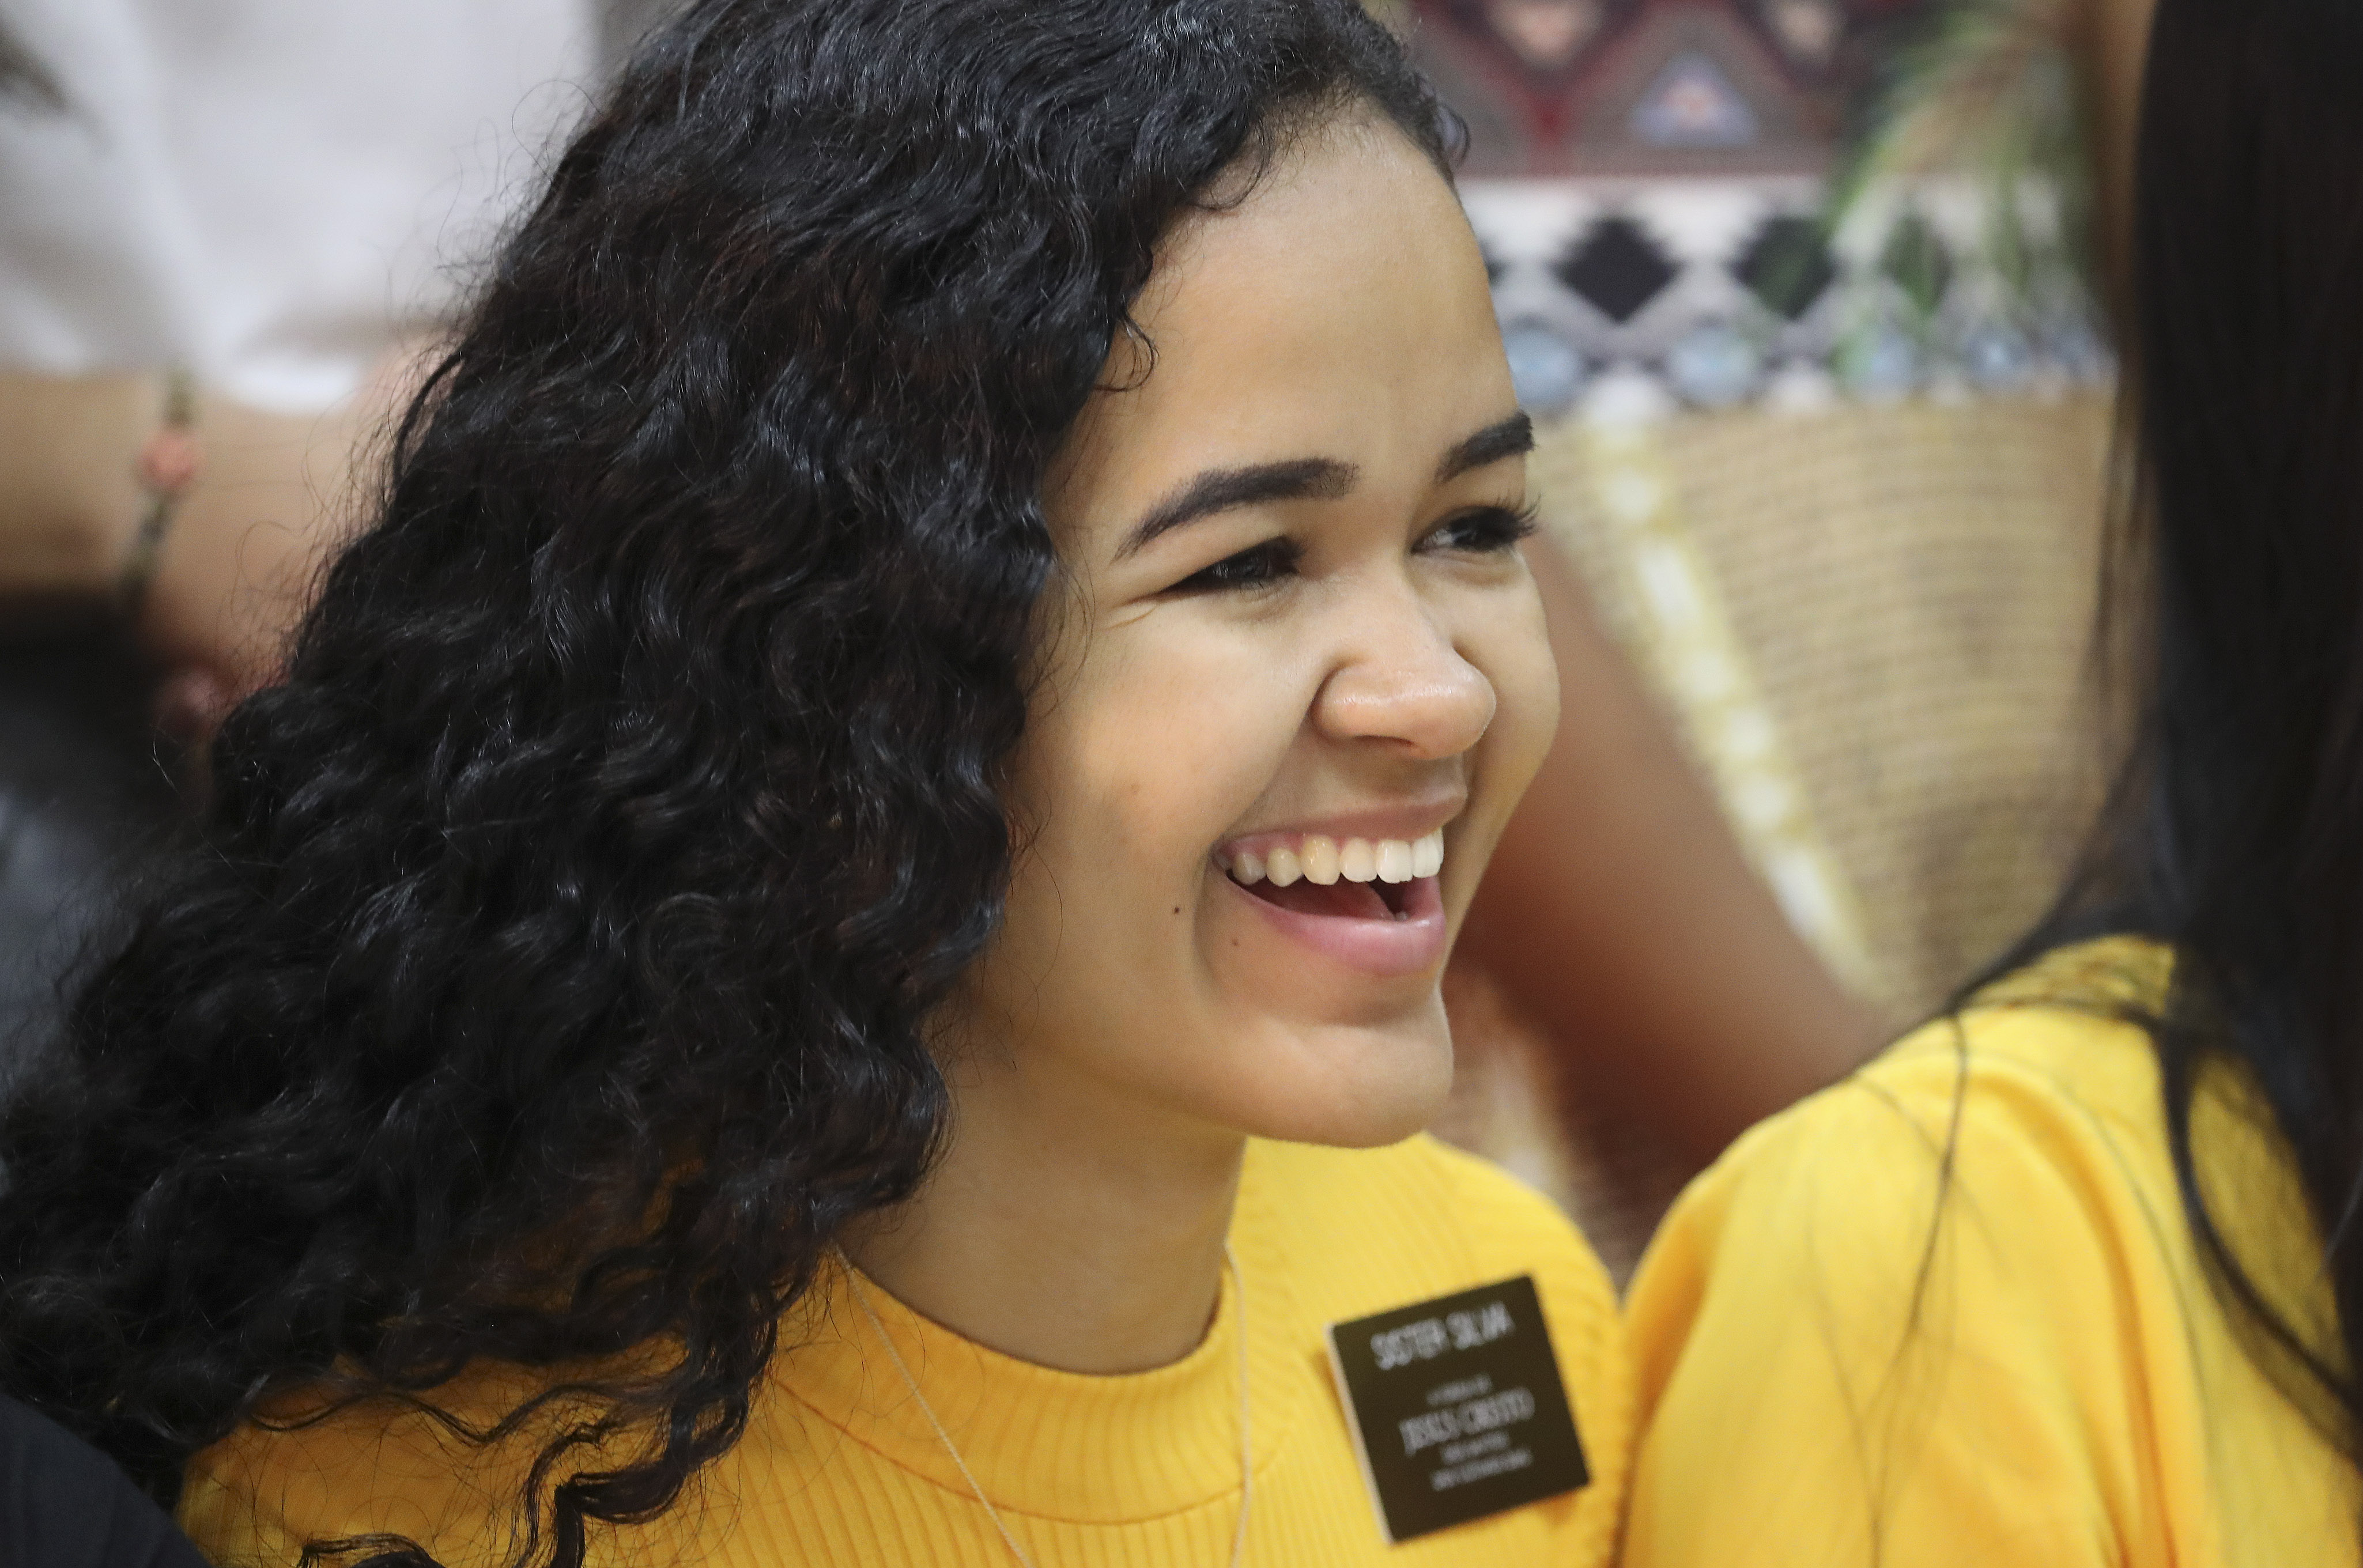 Sister Josilane Silva smiles while waiting for President Russell M. Nelson of The Church of Jesus Christ of Latter-day Saints during a missionary meeting in Brasilia, Brazil, on Friday, Aug. 30, 2019.